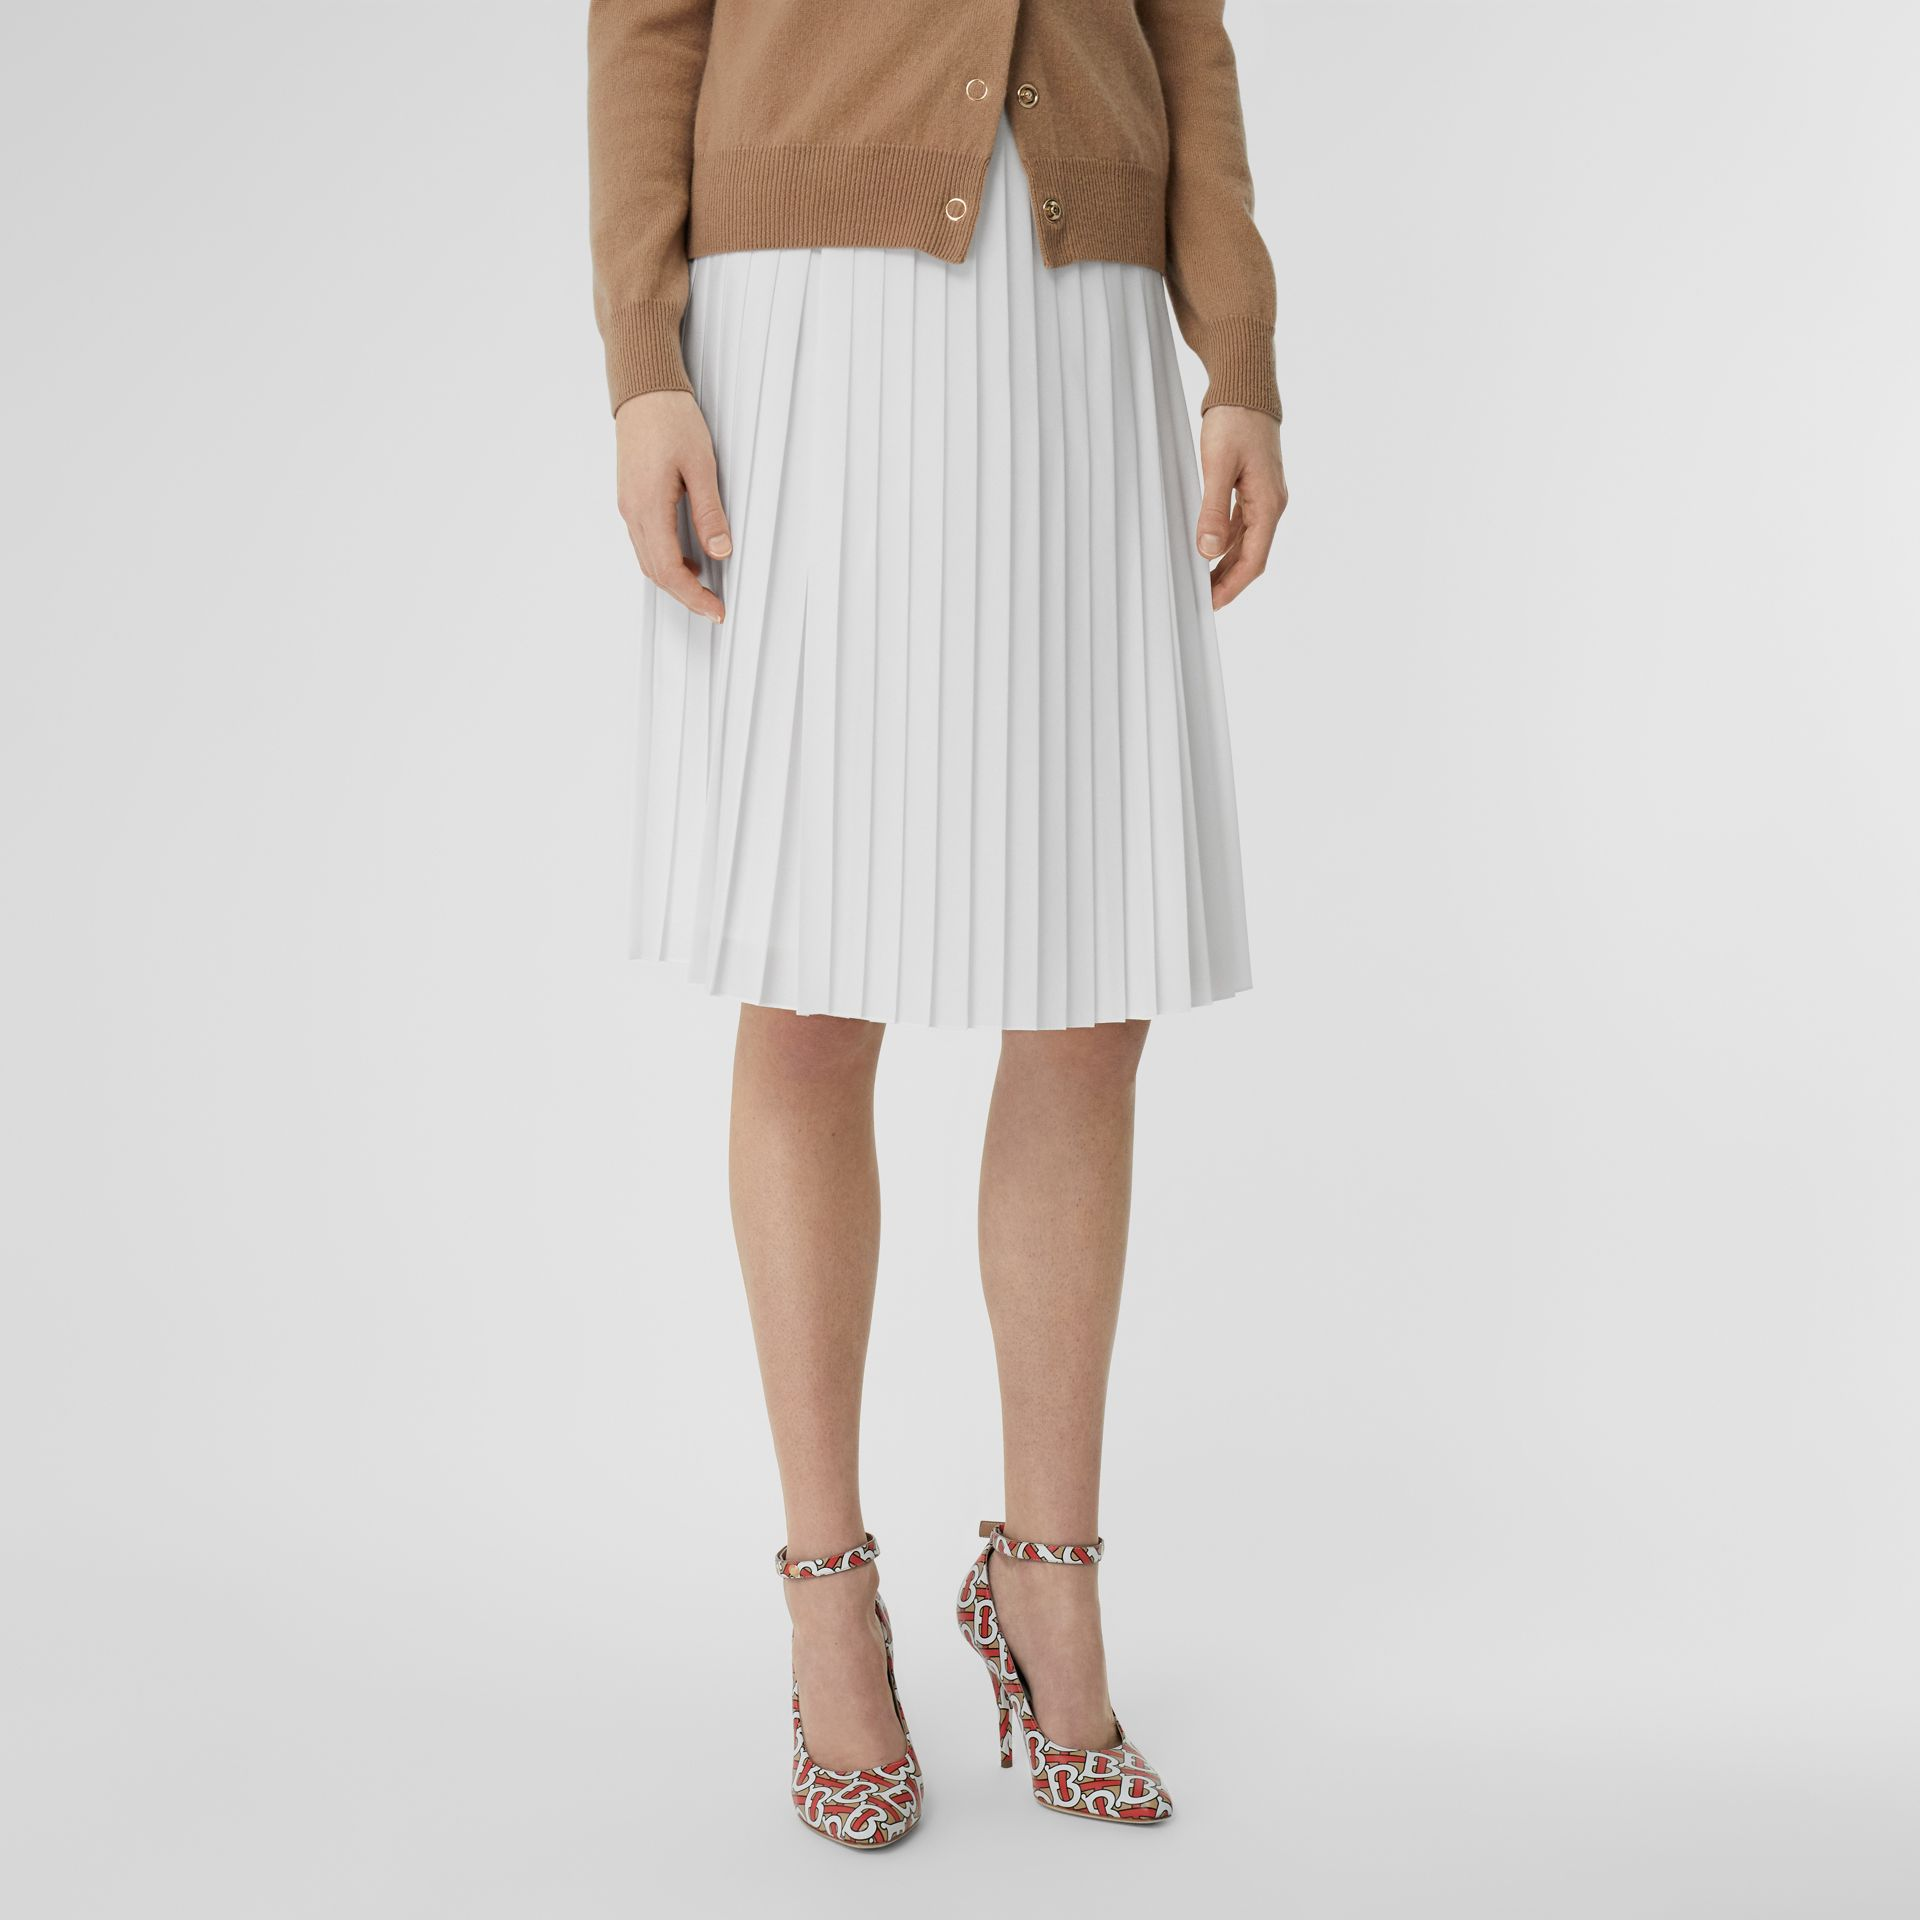 Silk-lined Pleated Skirt in Optic White - Women | Burberry Canada - gallery image 4